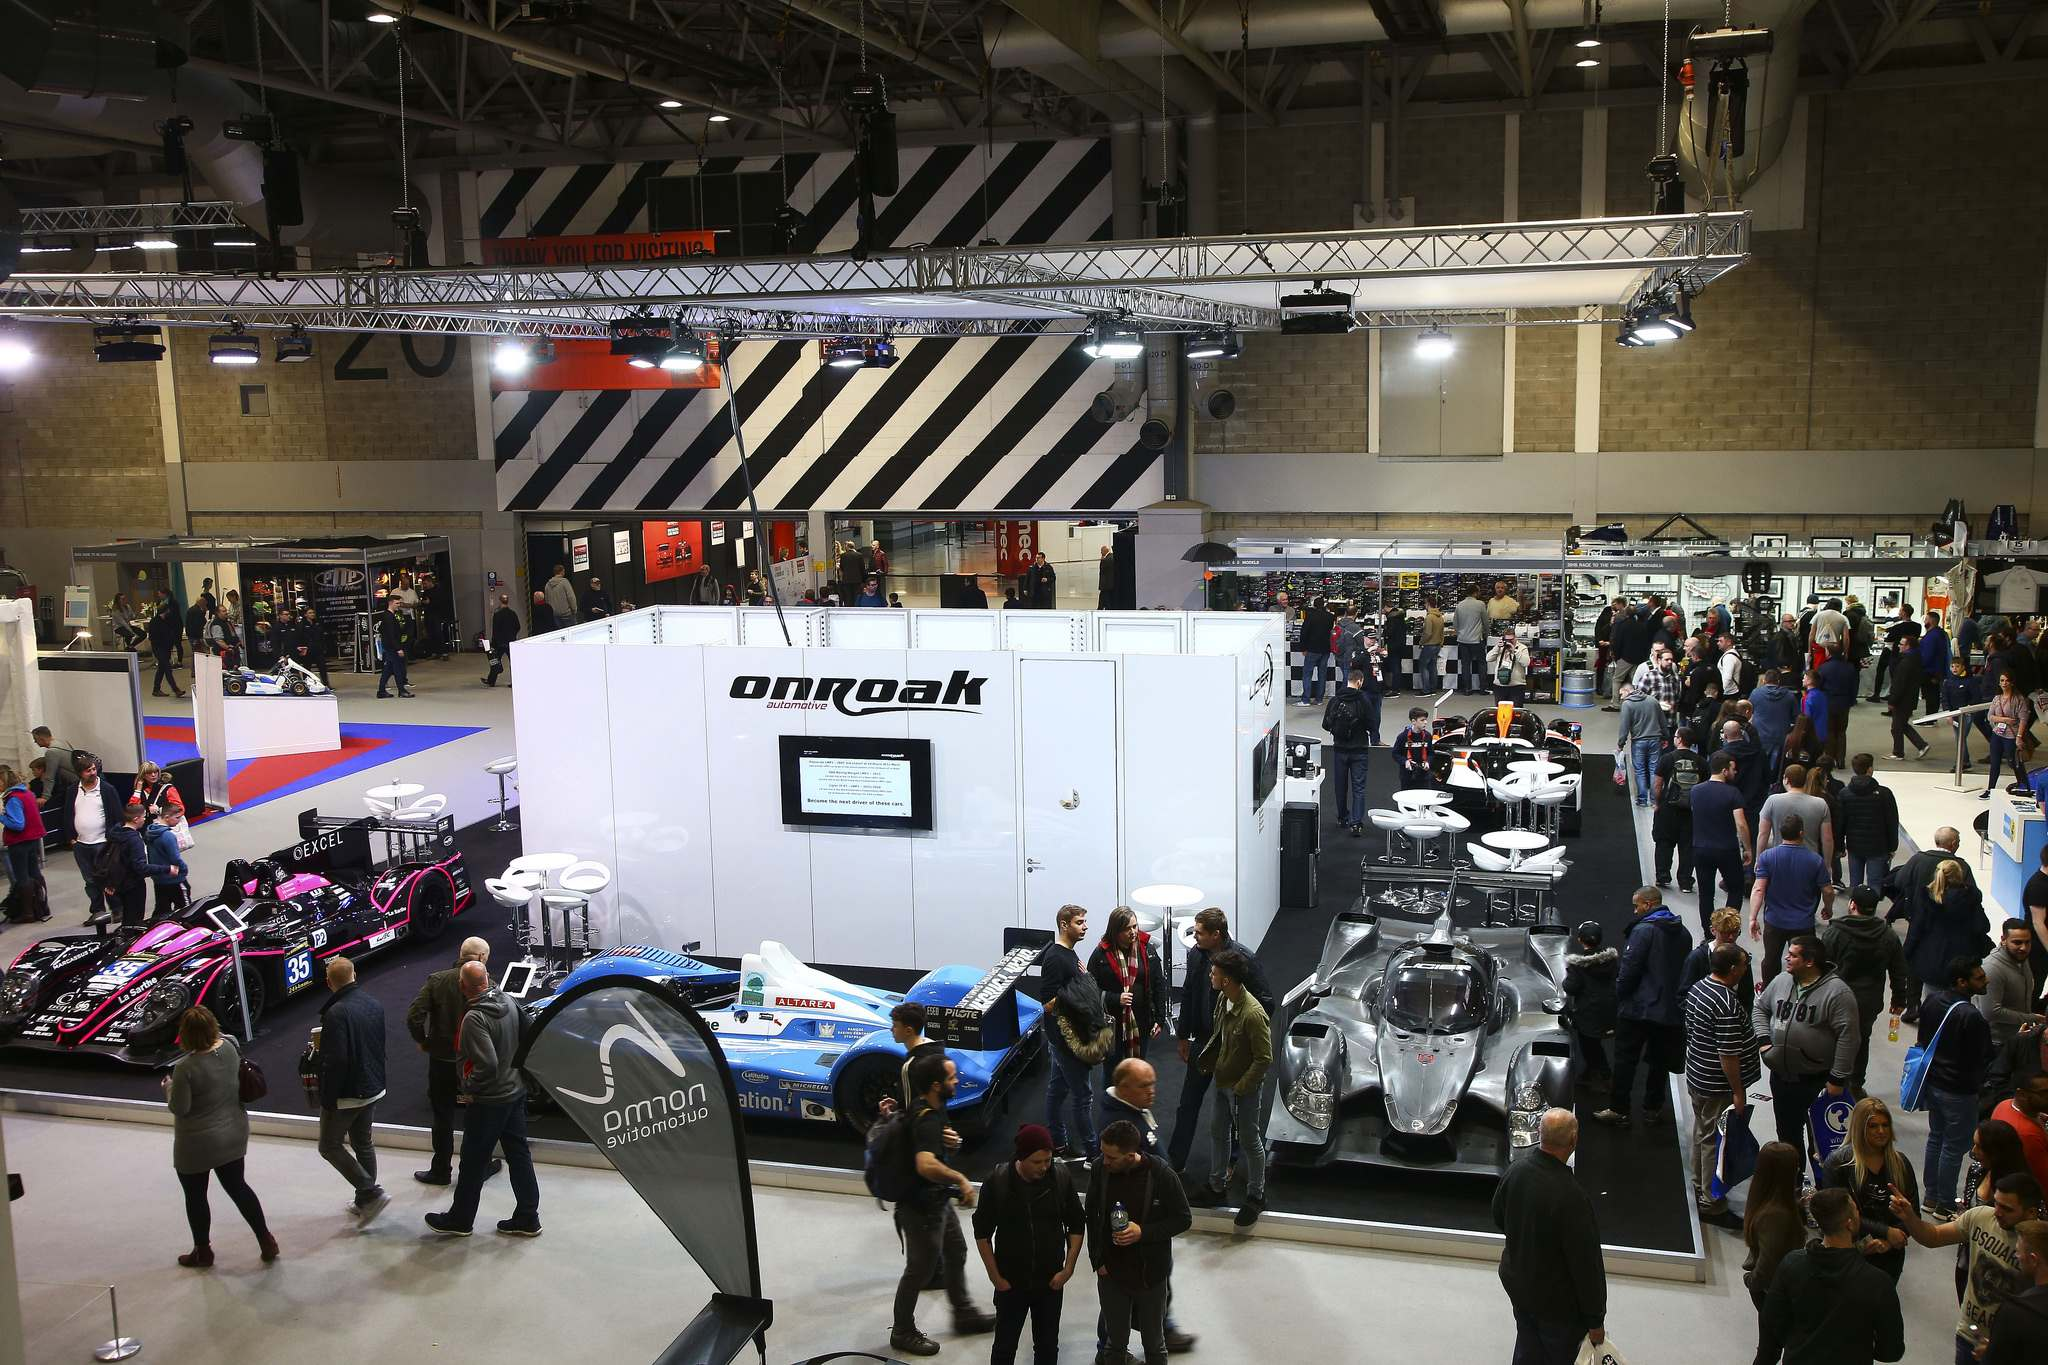 ligier 201817 Ligier at Autosport International Show 2018